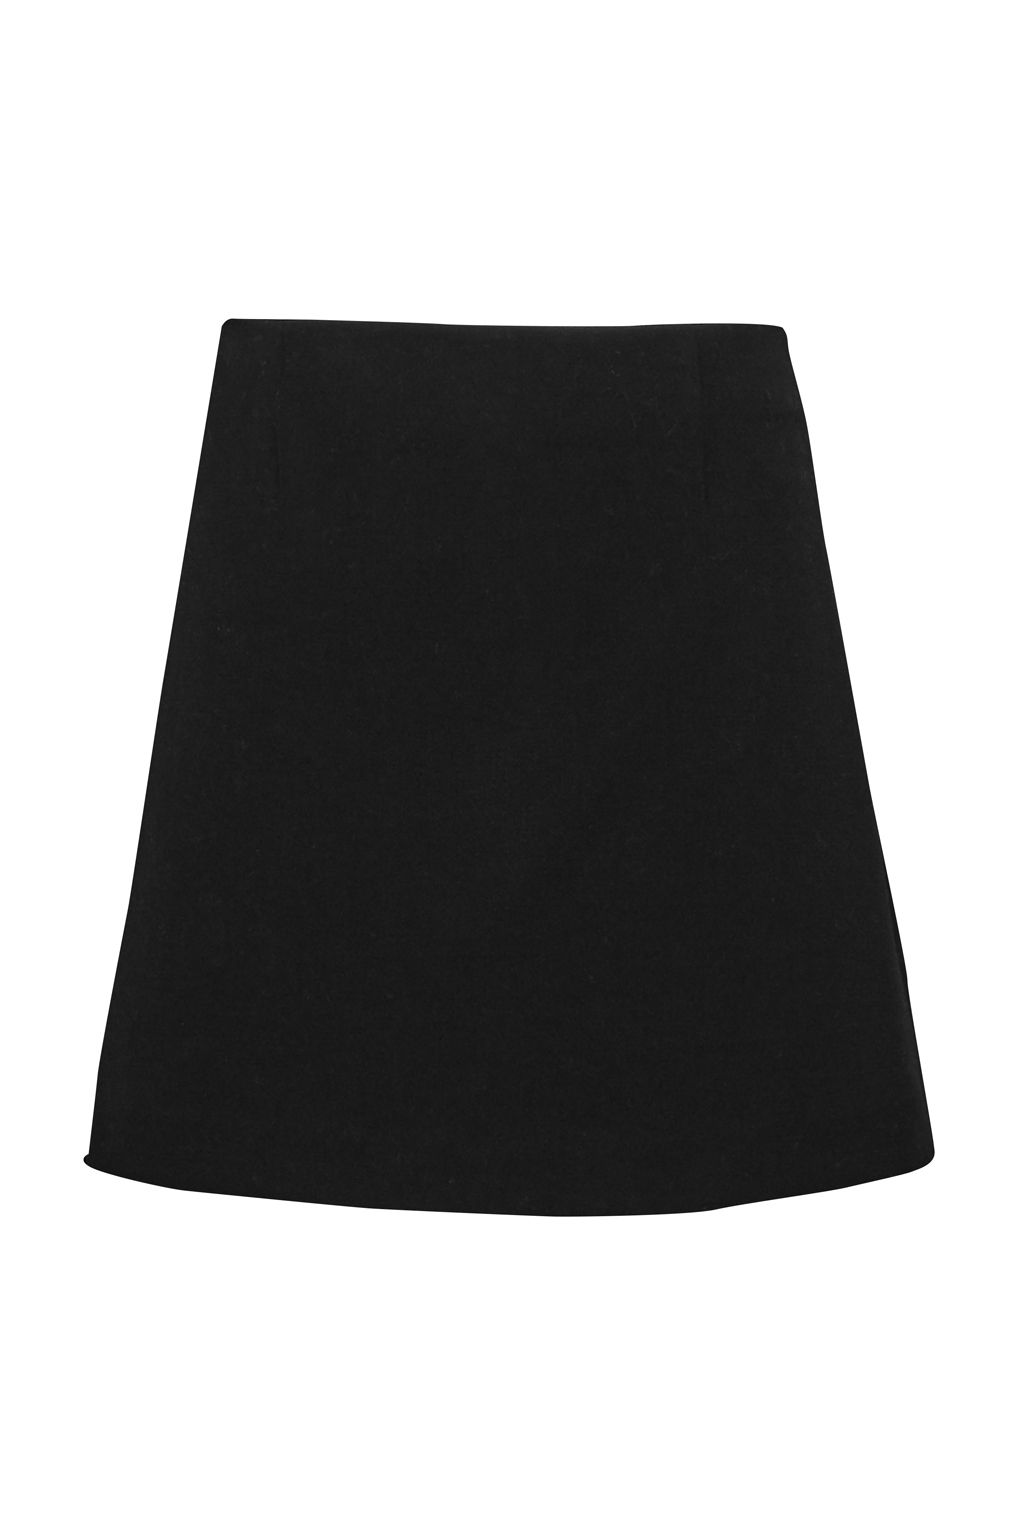 French Connection Sundae Suiting Mini Skirt, Black